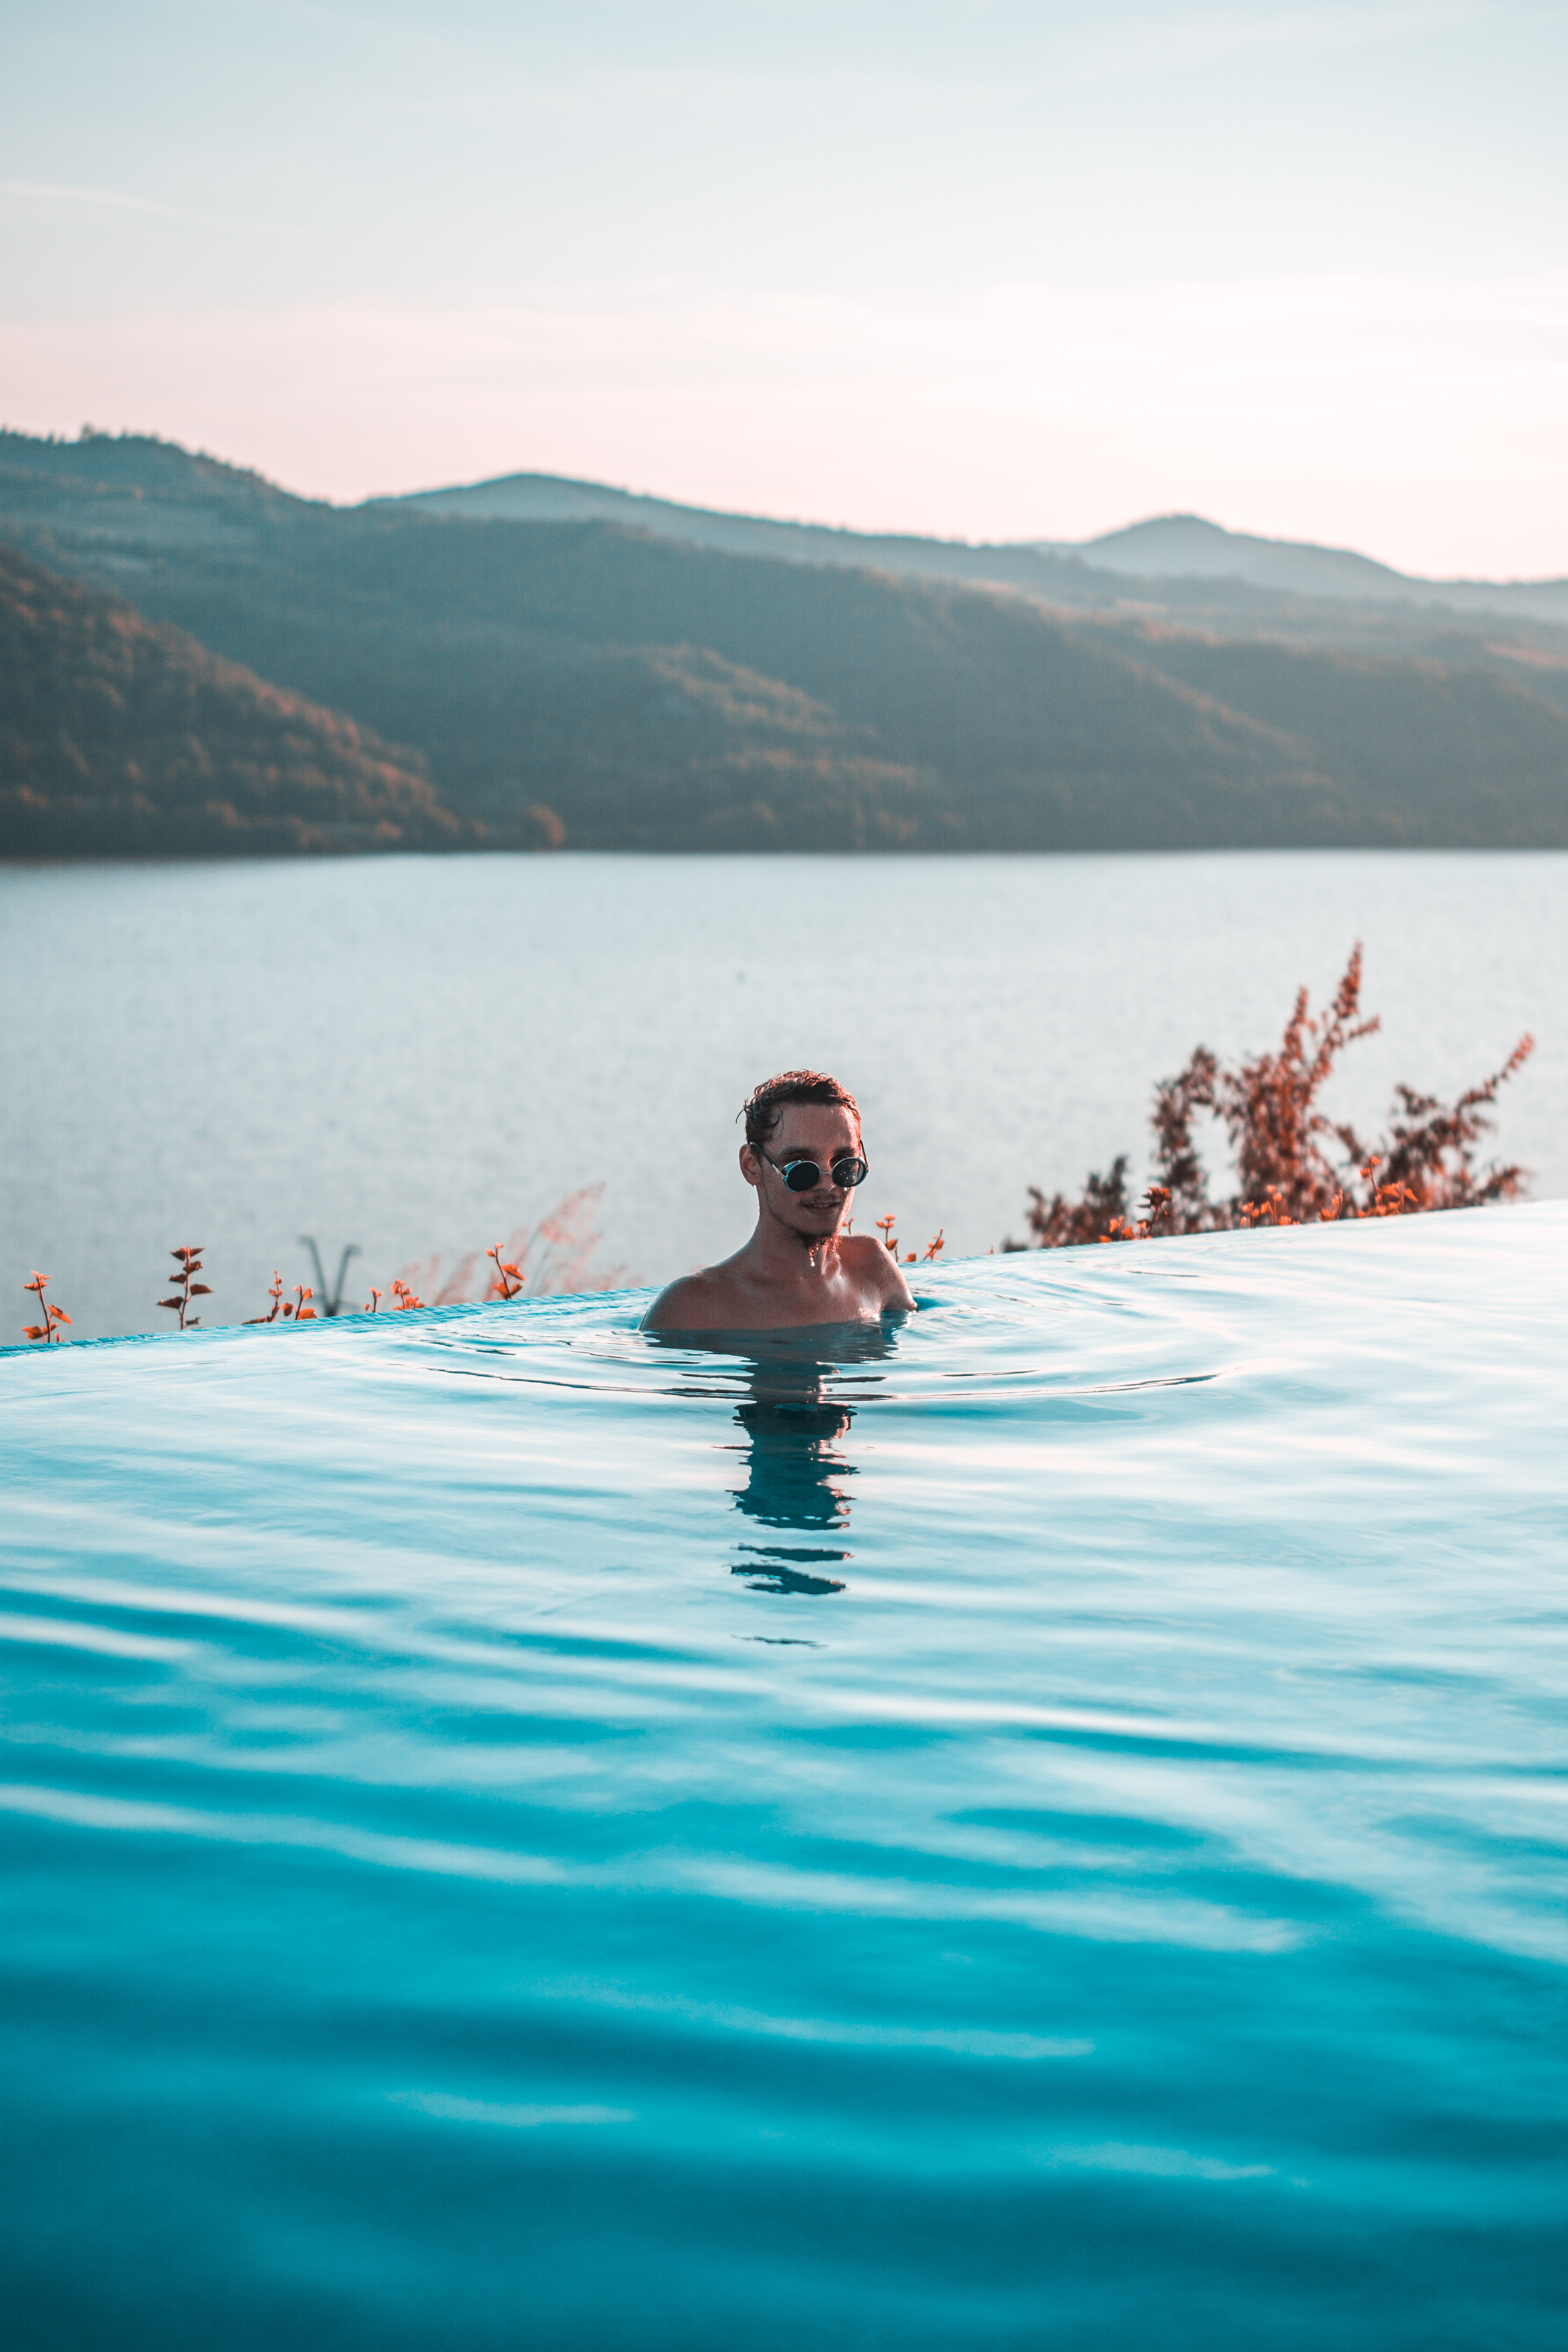 man wearing black sunglasses swimming on infinity pool near body of water at daytime